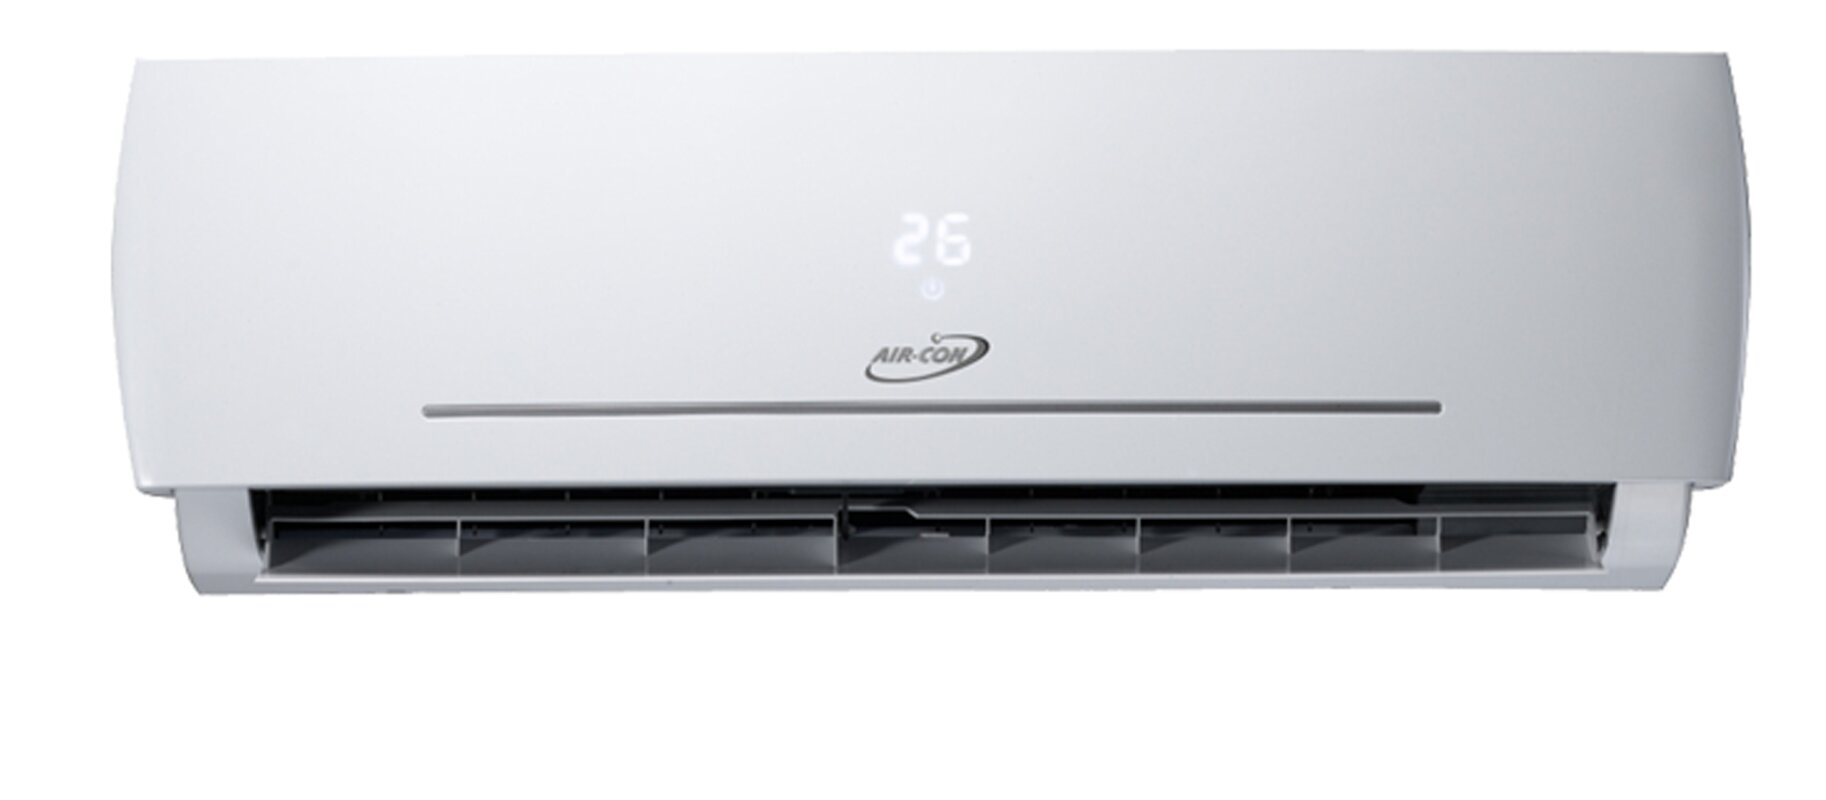 Aircon international blue series 2 18000 btu energy star ductless blue series 2 18000 btu energy star ductless mini split air conditioner with remote jeuxipadfo Images